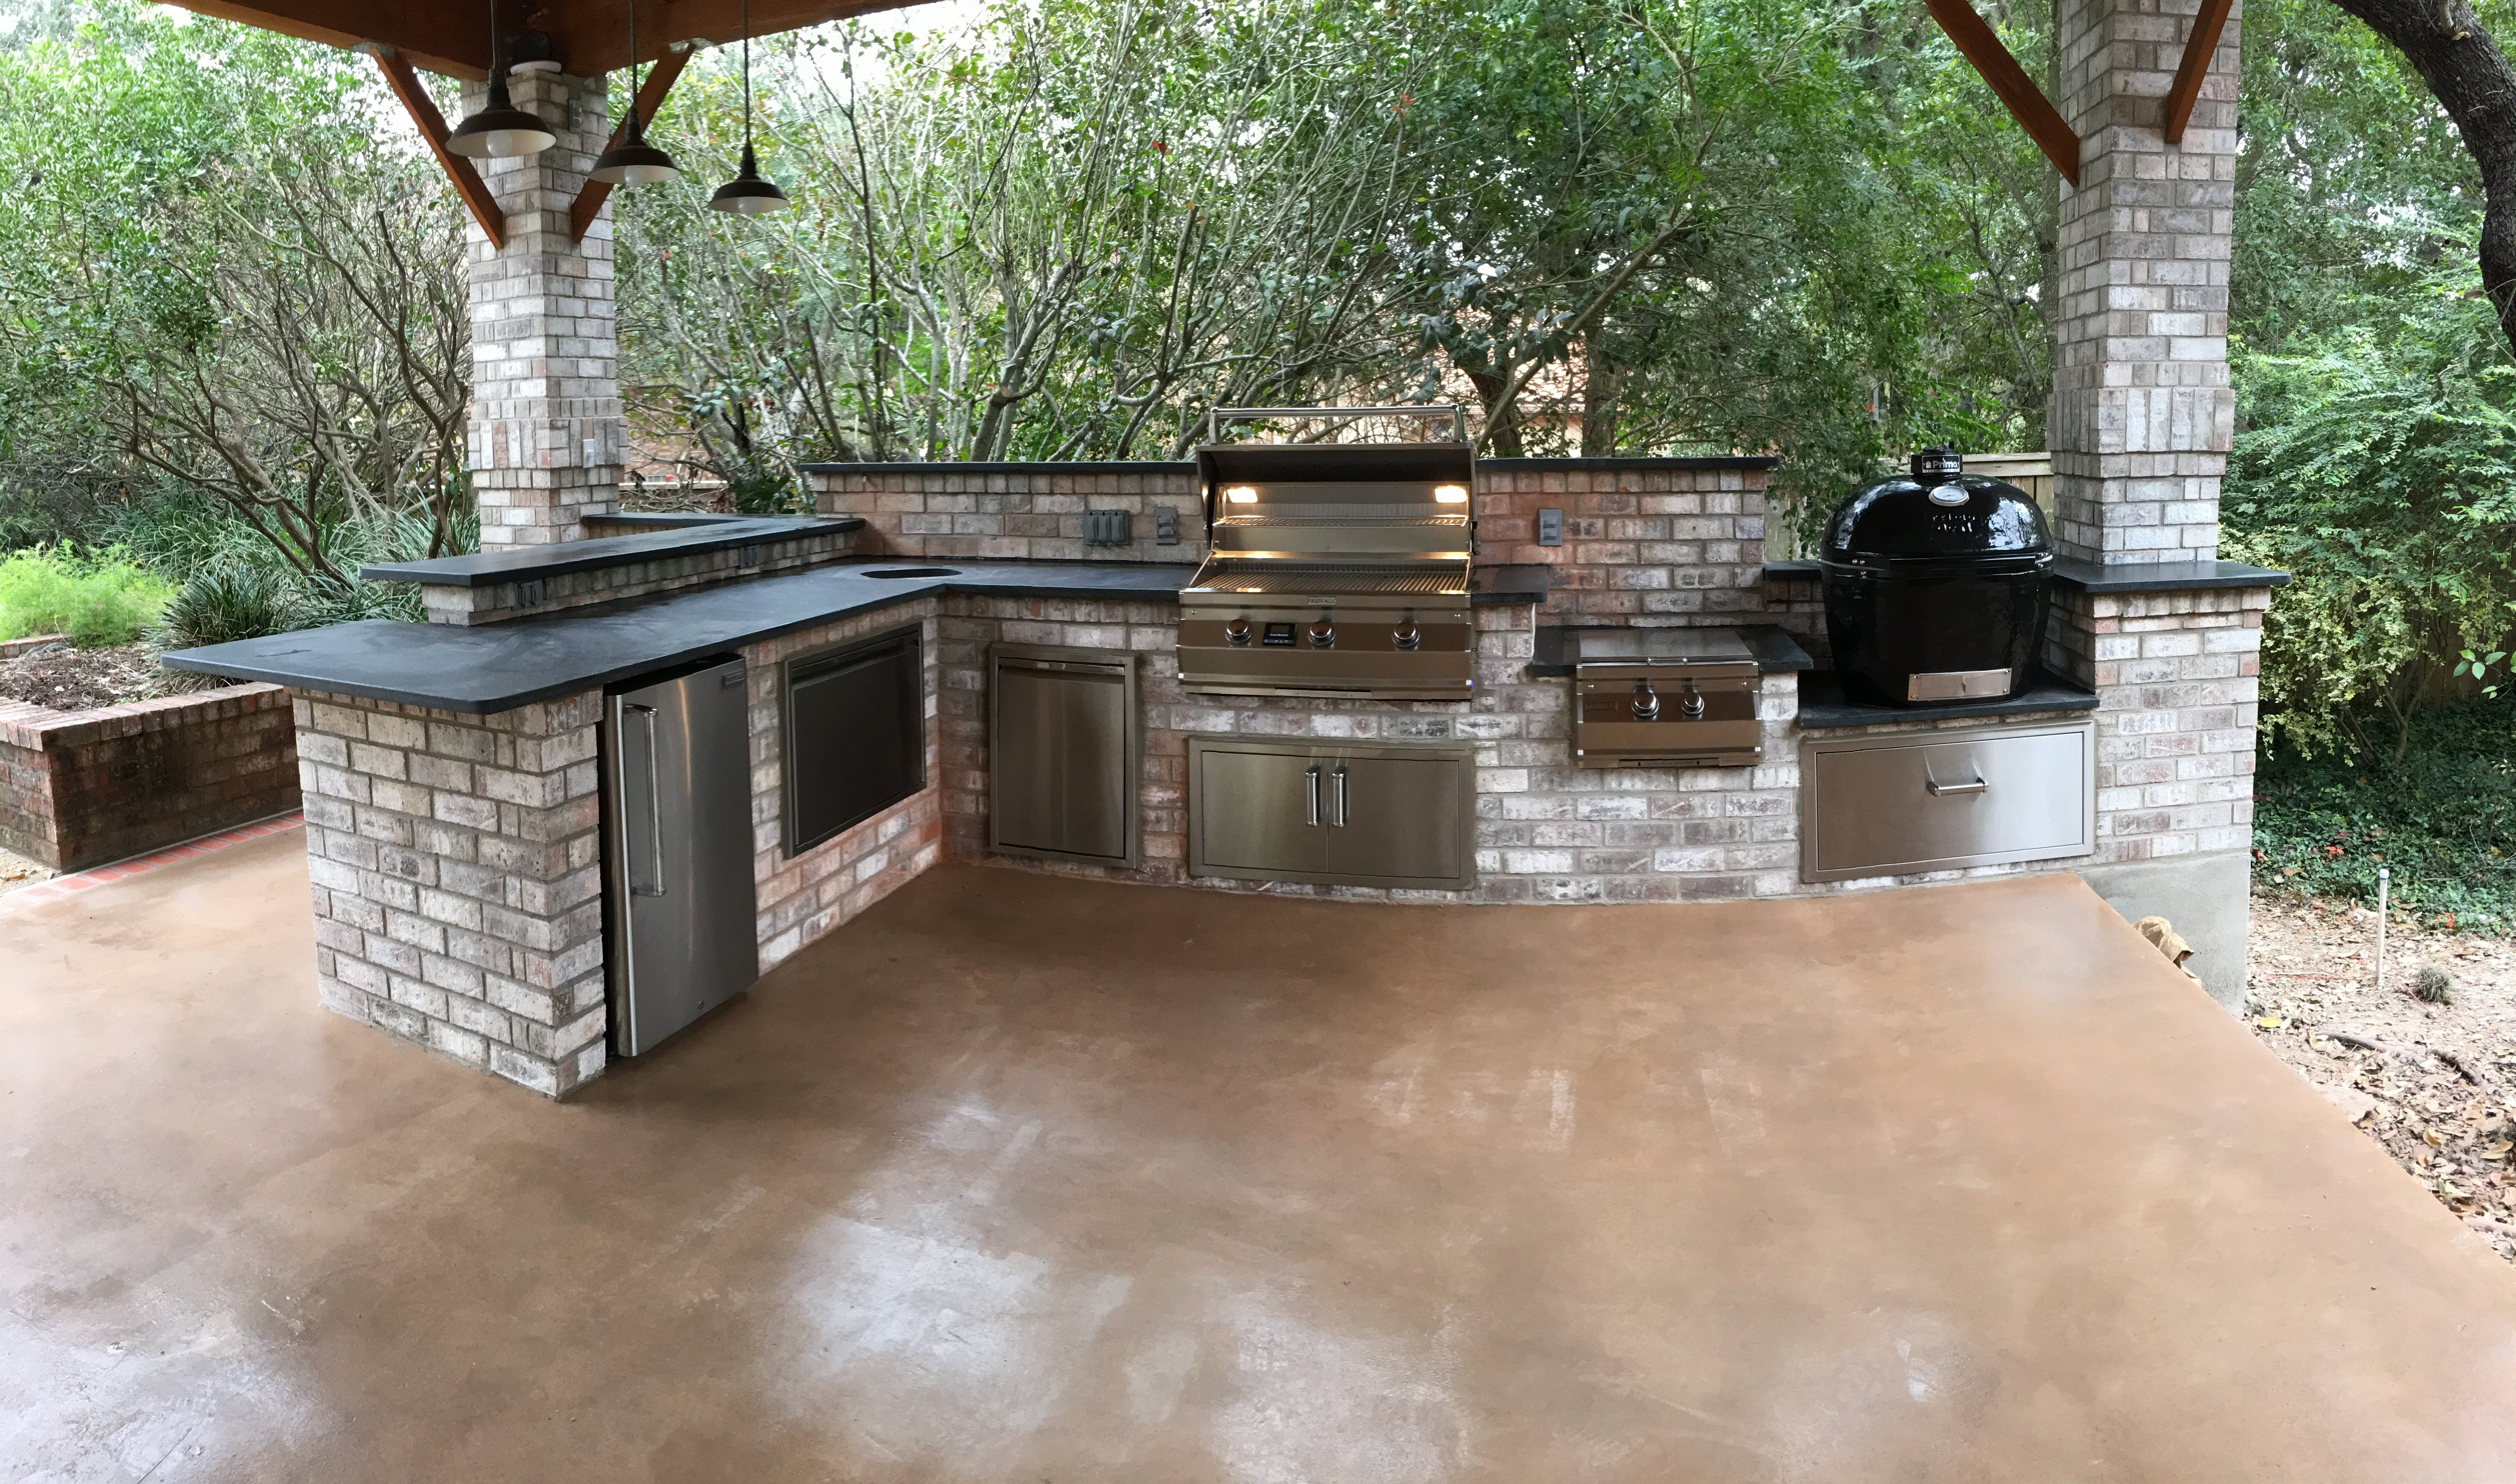 Cozy outdoor escapes gallery outdoor kitchens san for Q kitchen san antonio tx